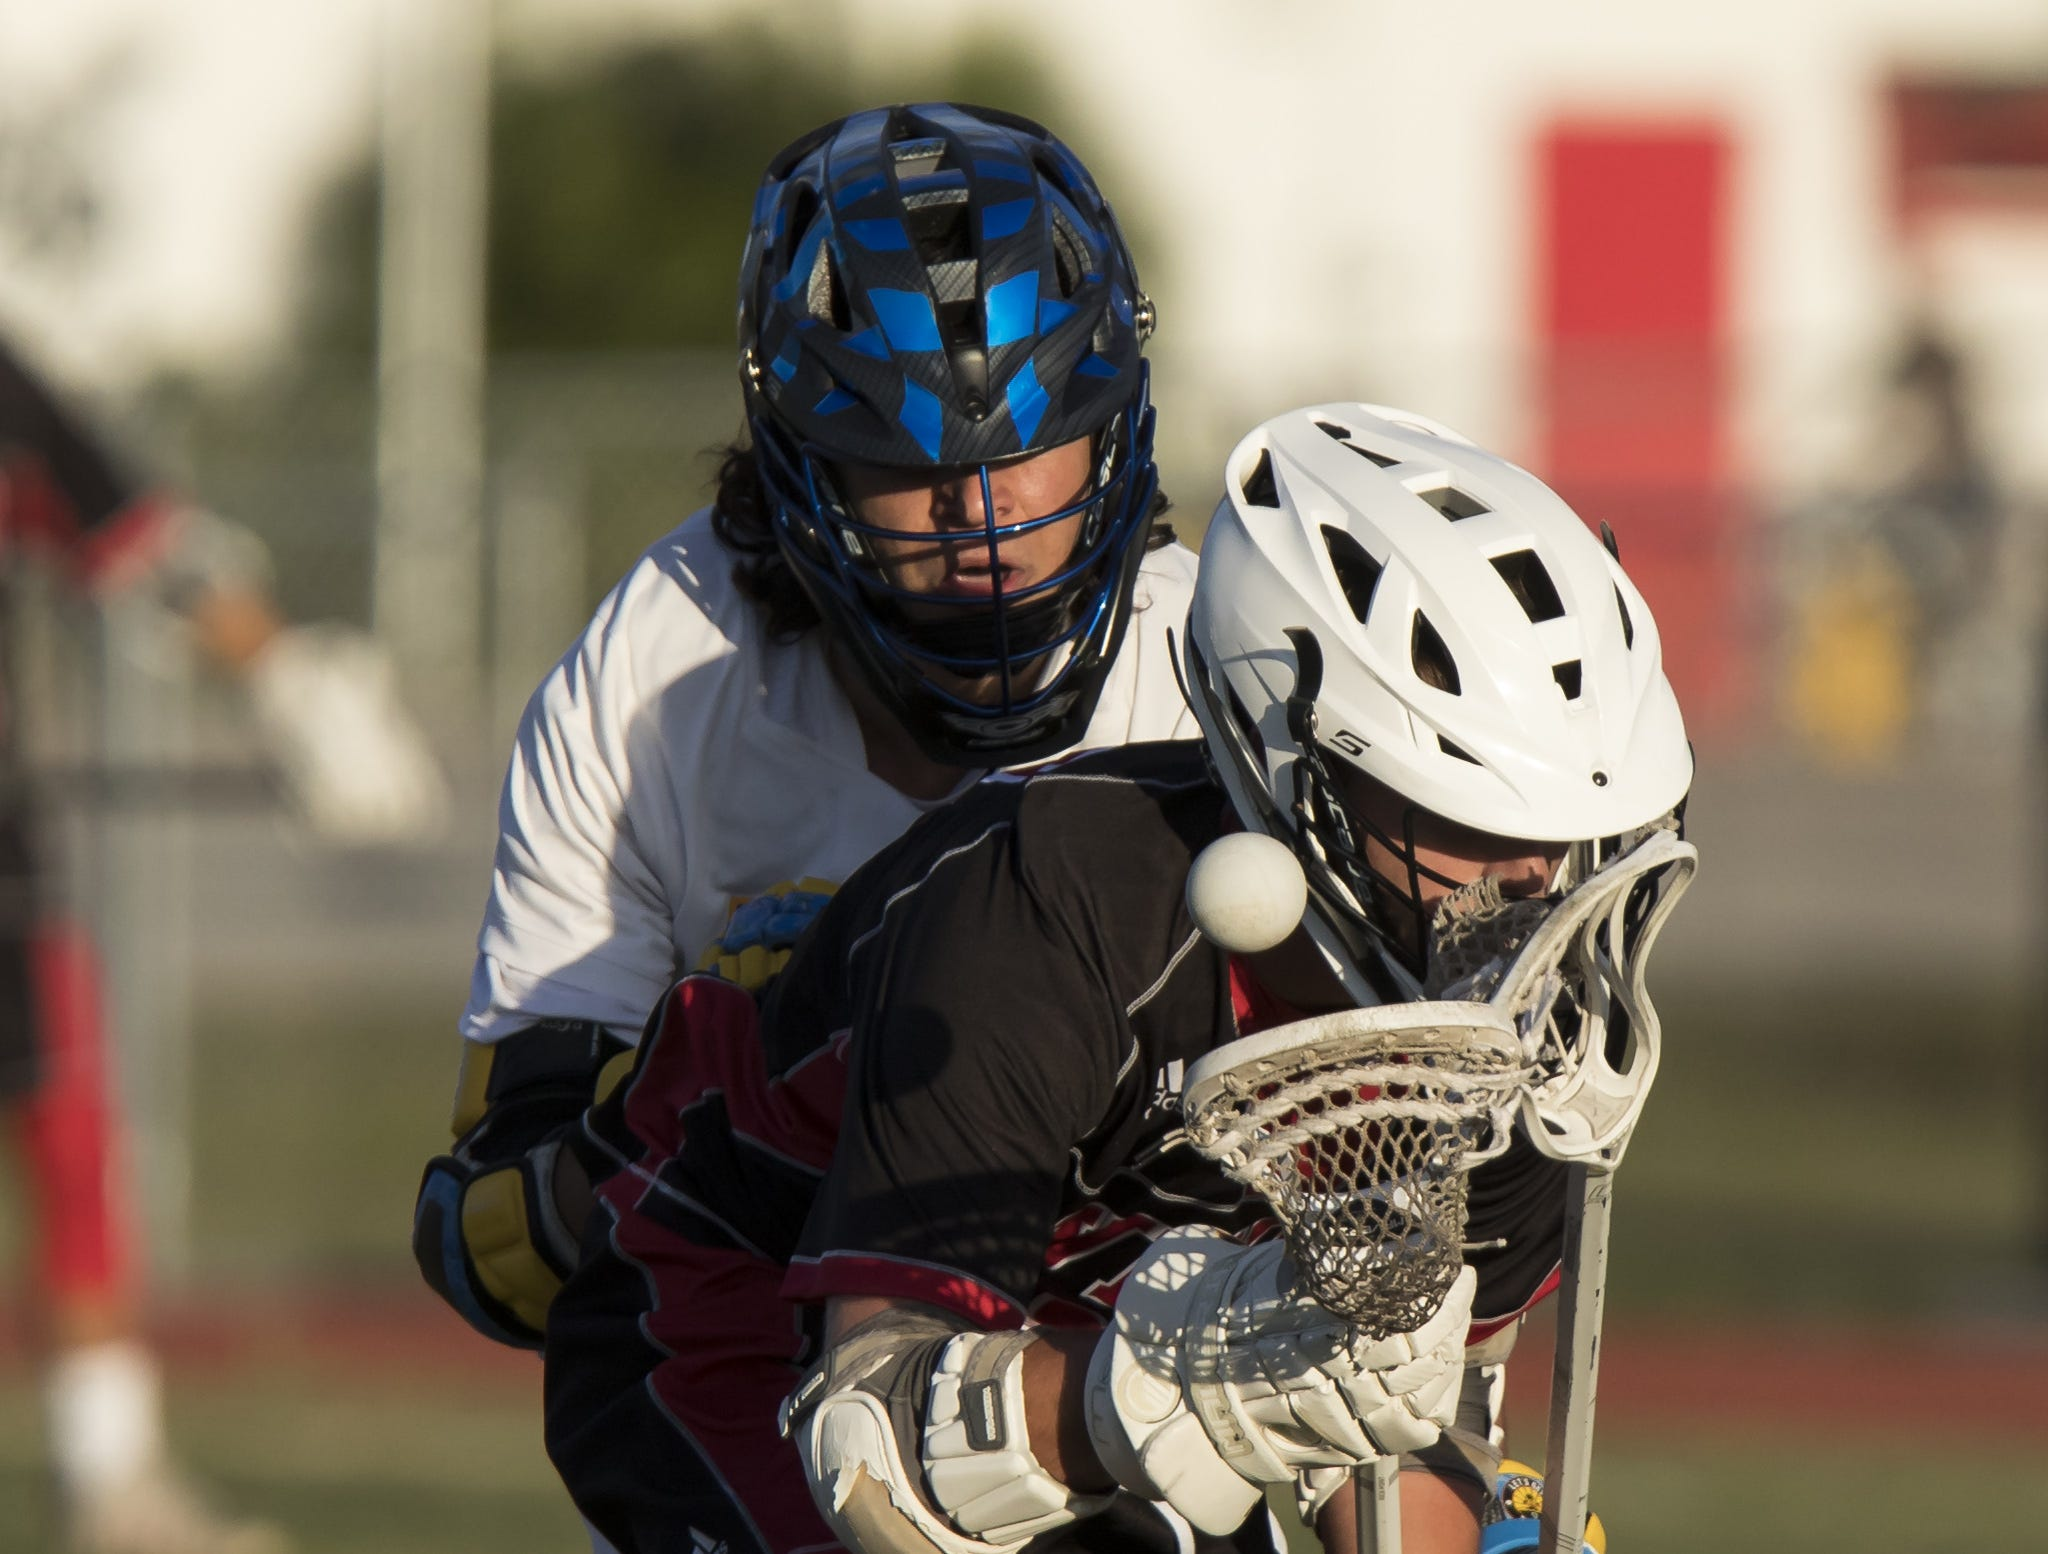 Vero Beach plays against Martin County during the high school boys lacrosse game Tuesday, April 16, 2019, at Vero Beach High School.